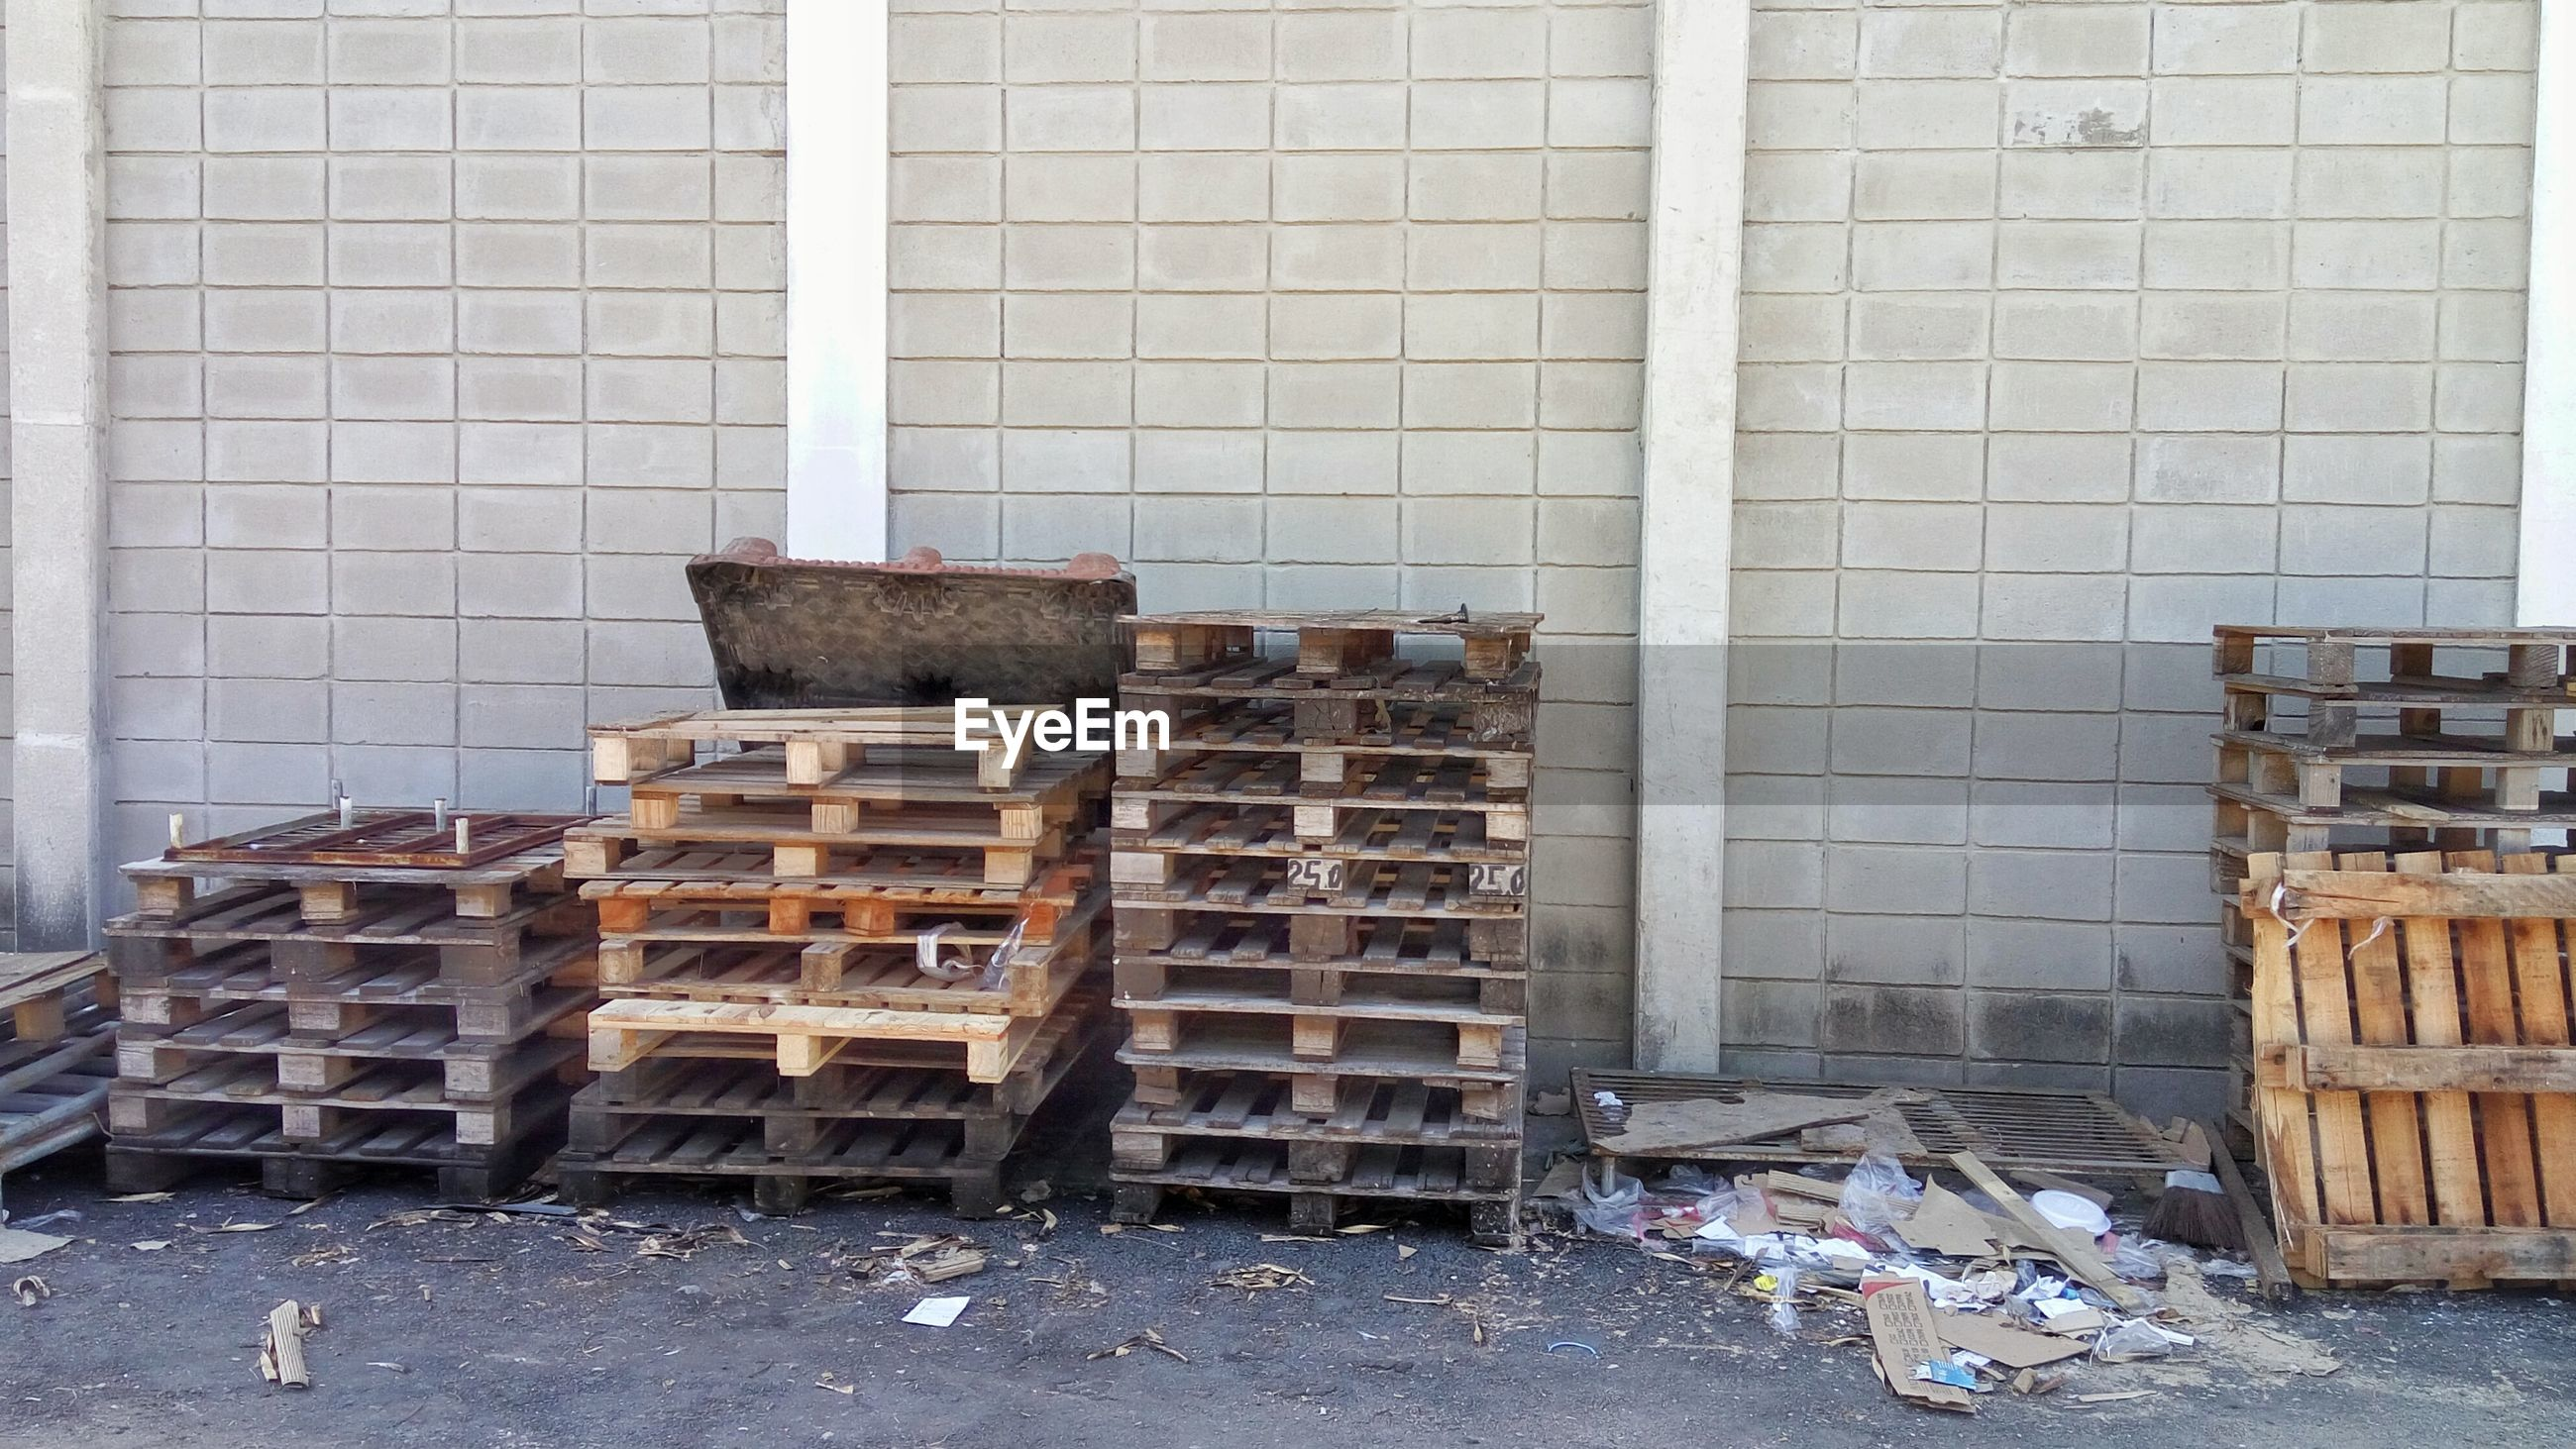 Wooden pallets on footpath against wall